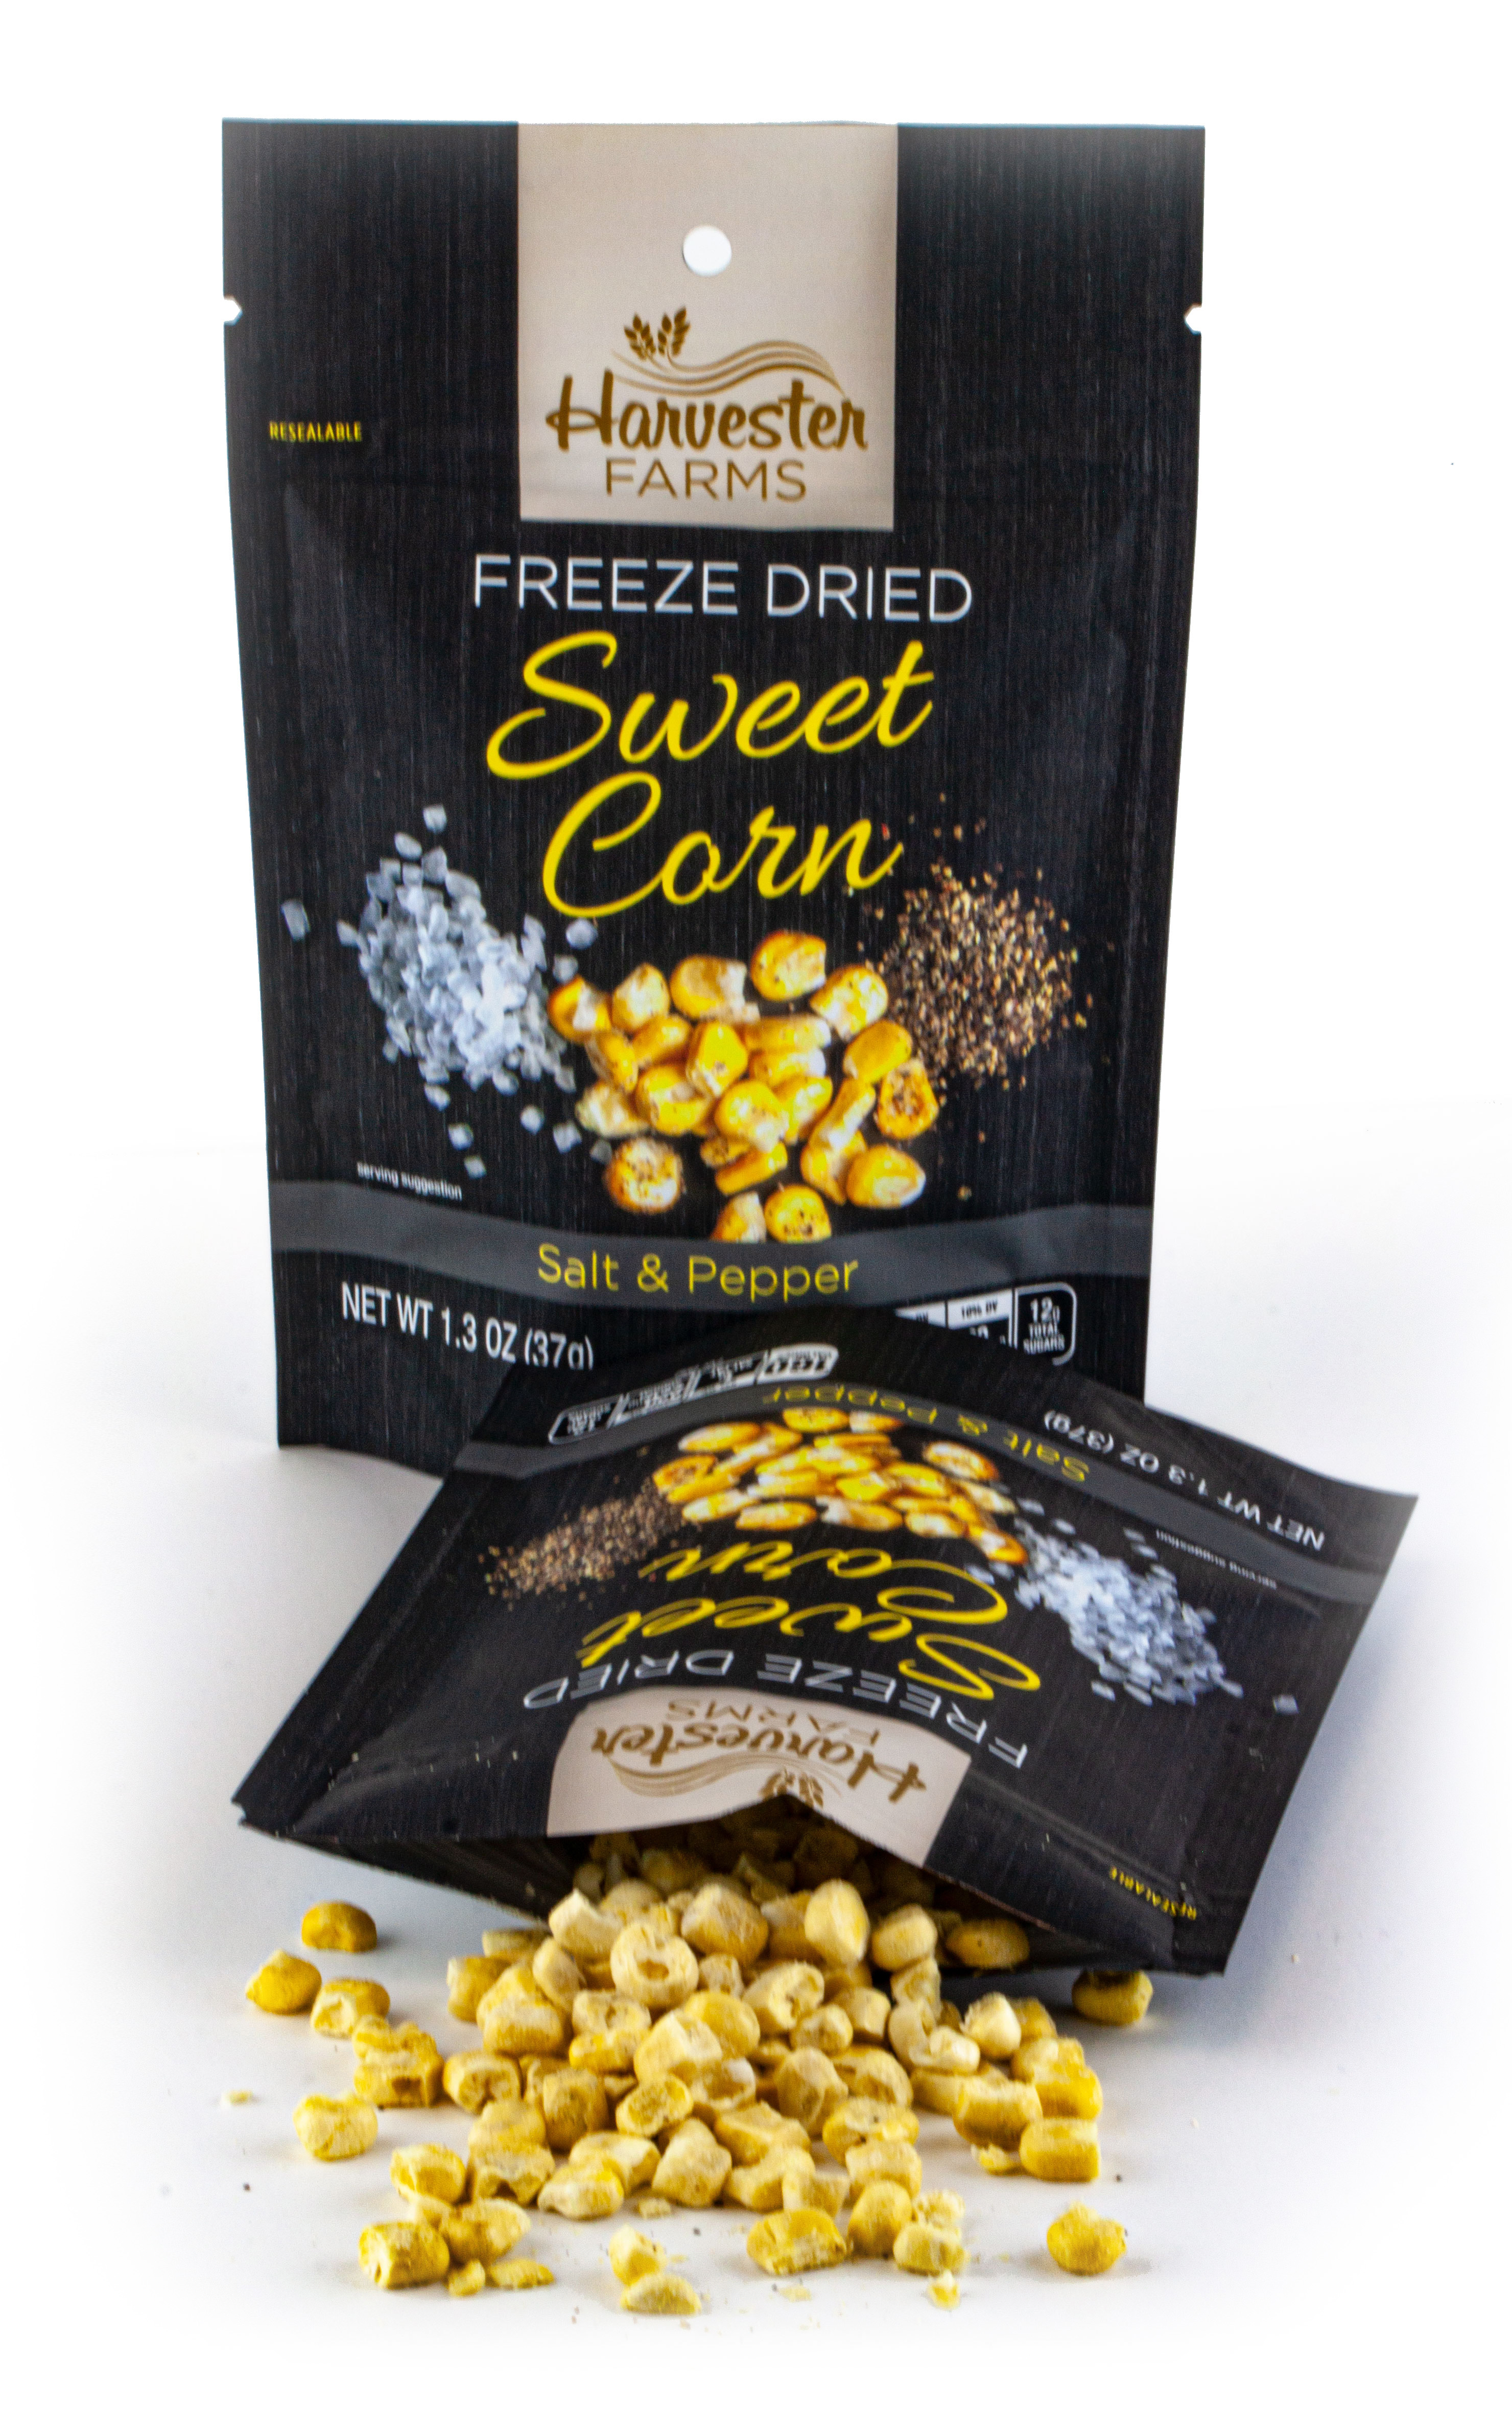 Brothers All Natural Launches Savory, Crunchy Harvester Farms  Freeze-Dried Sweet Corn with Salt and Pepper